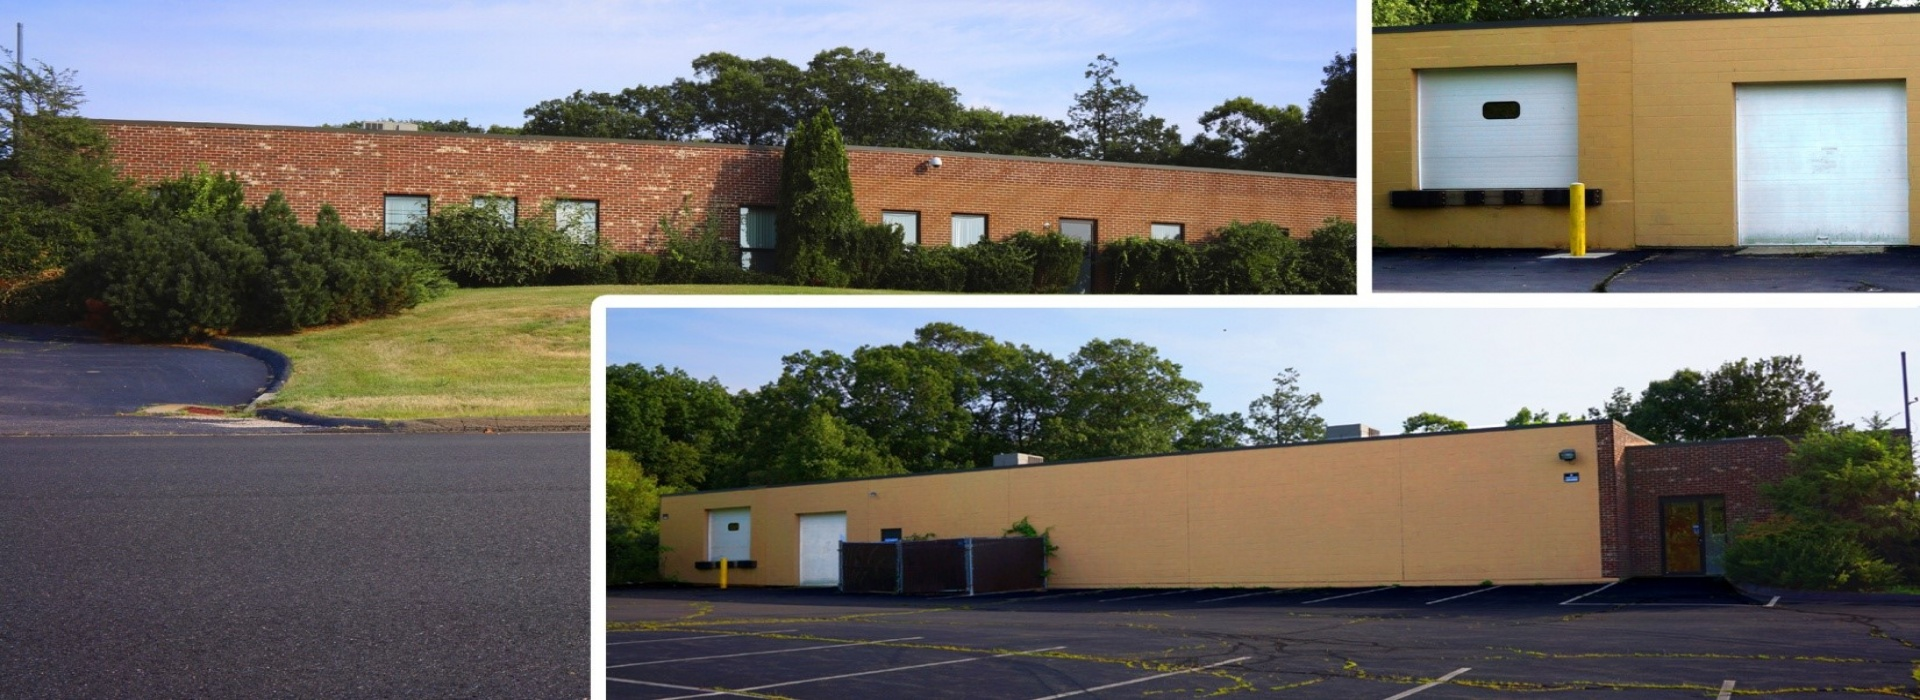 133 Commerce Street, East Haven, Connecticut 06512, ,Warehouse/Industrial/Lt, Industrial,For Sale,Commerce Street,1020